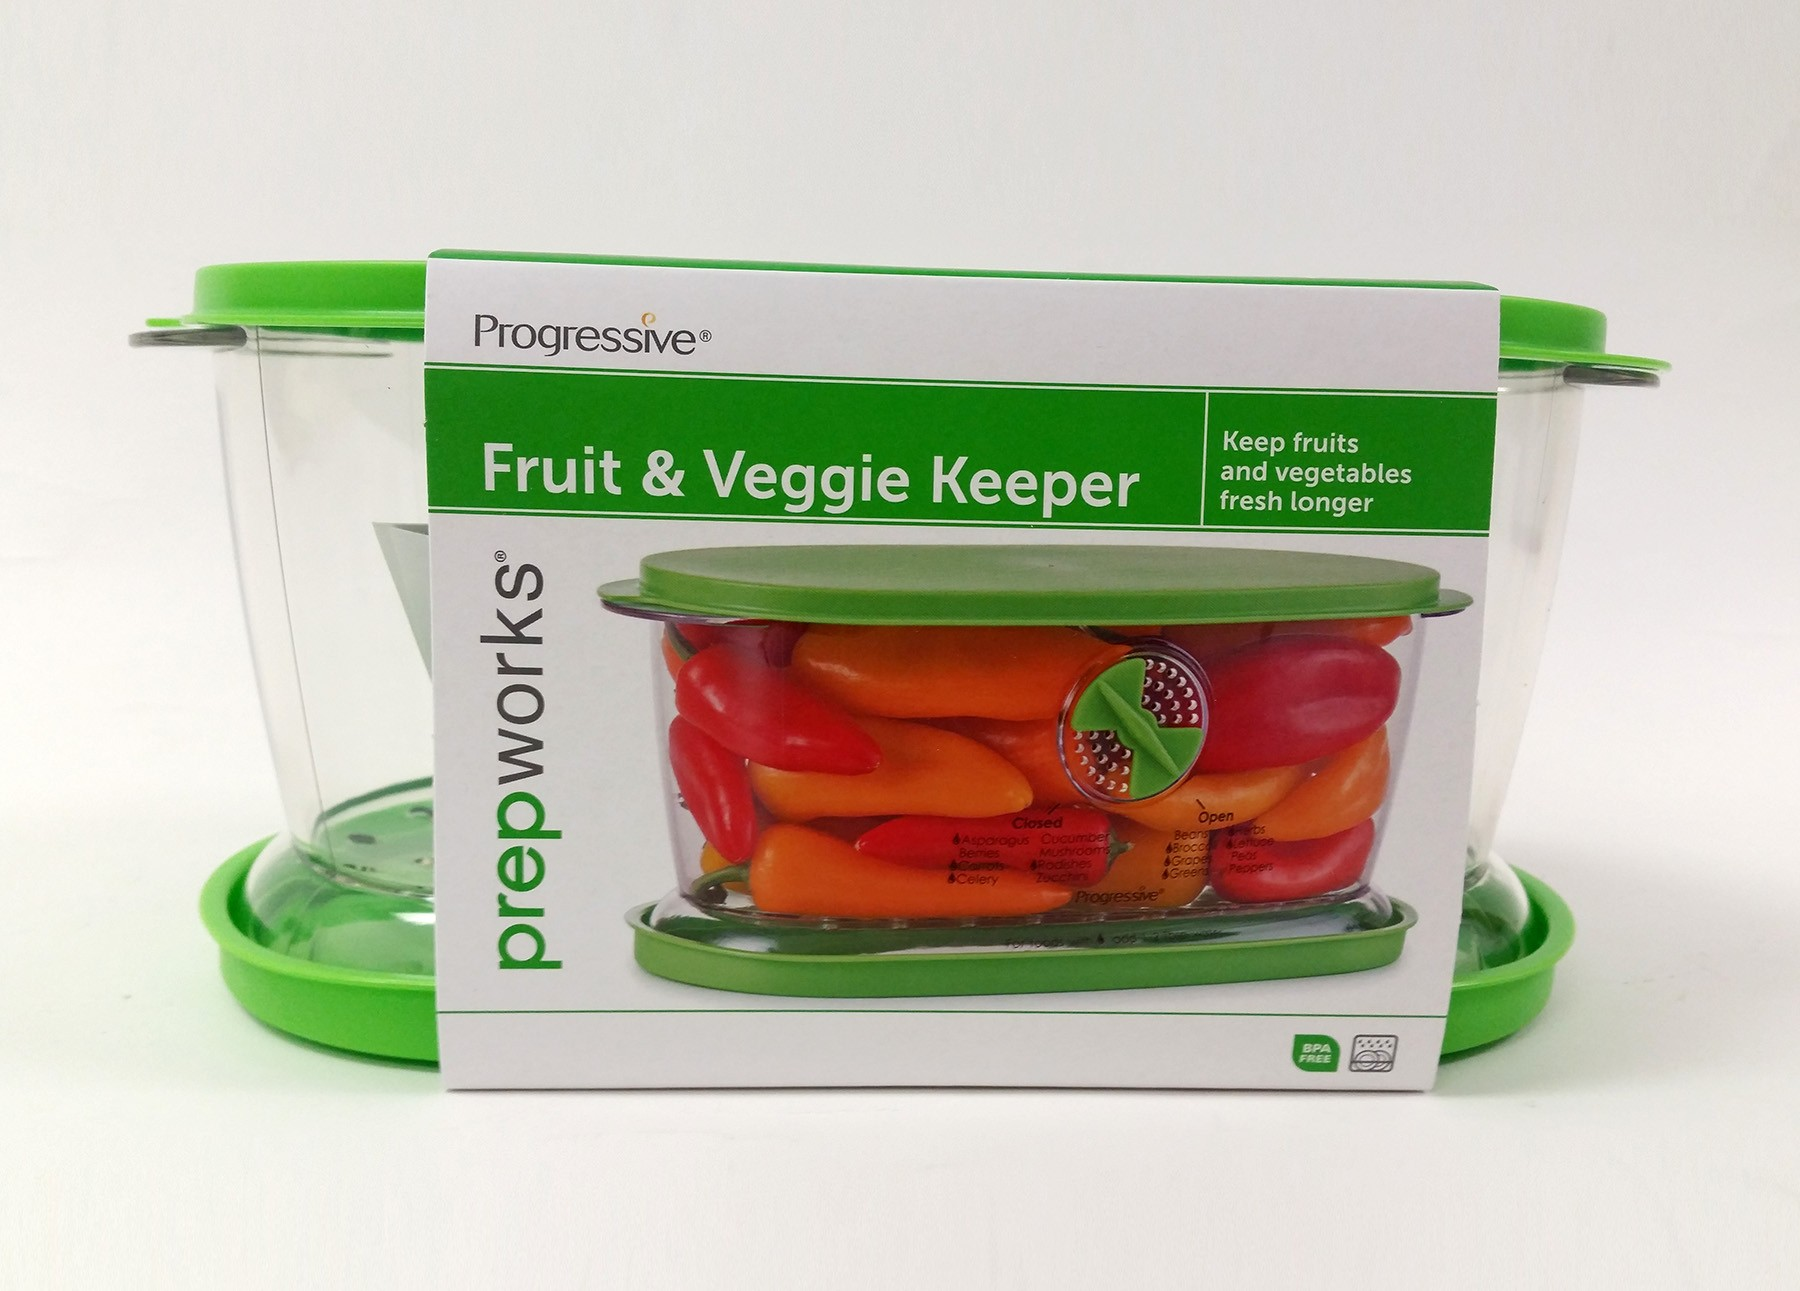 Fruit & Veggie Keeper